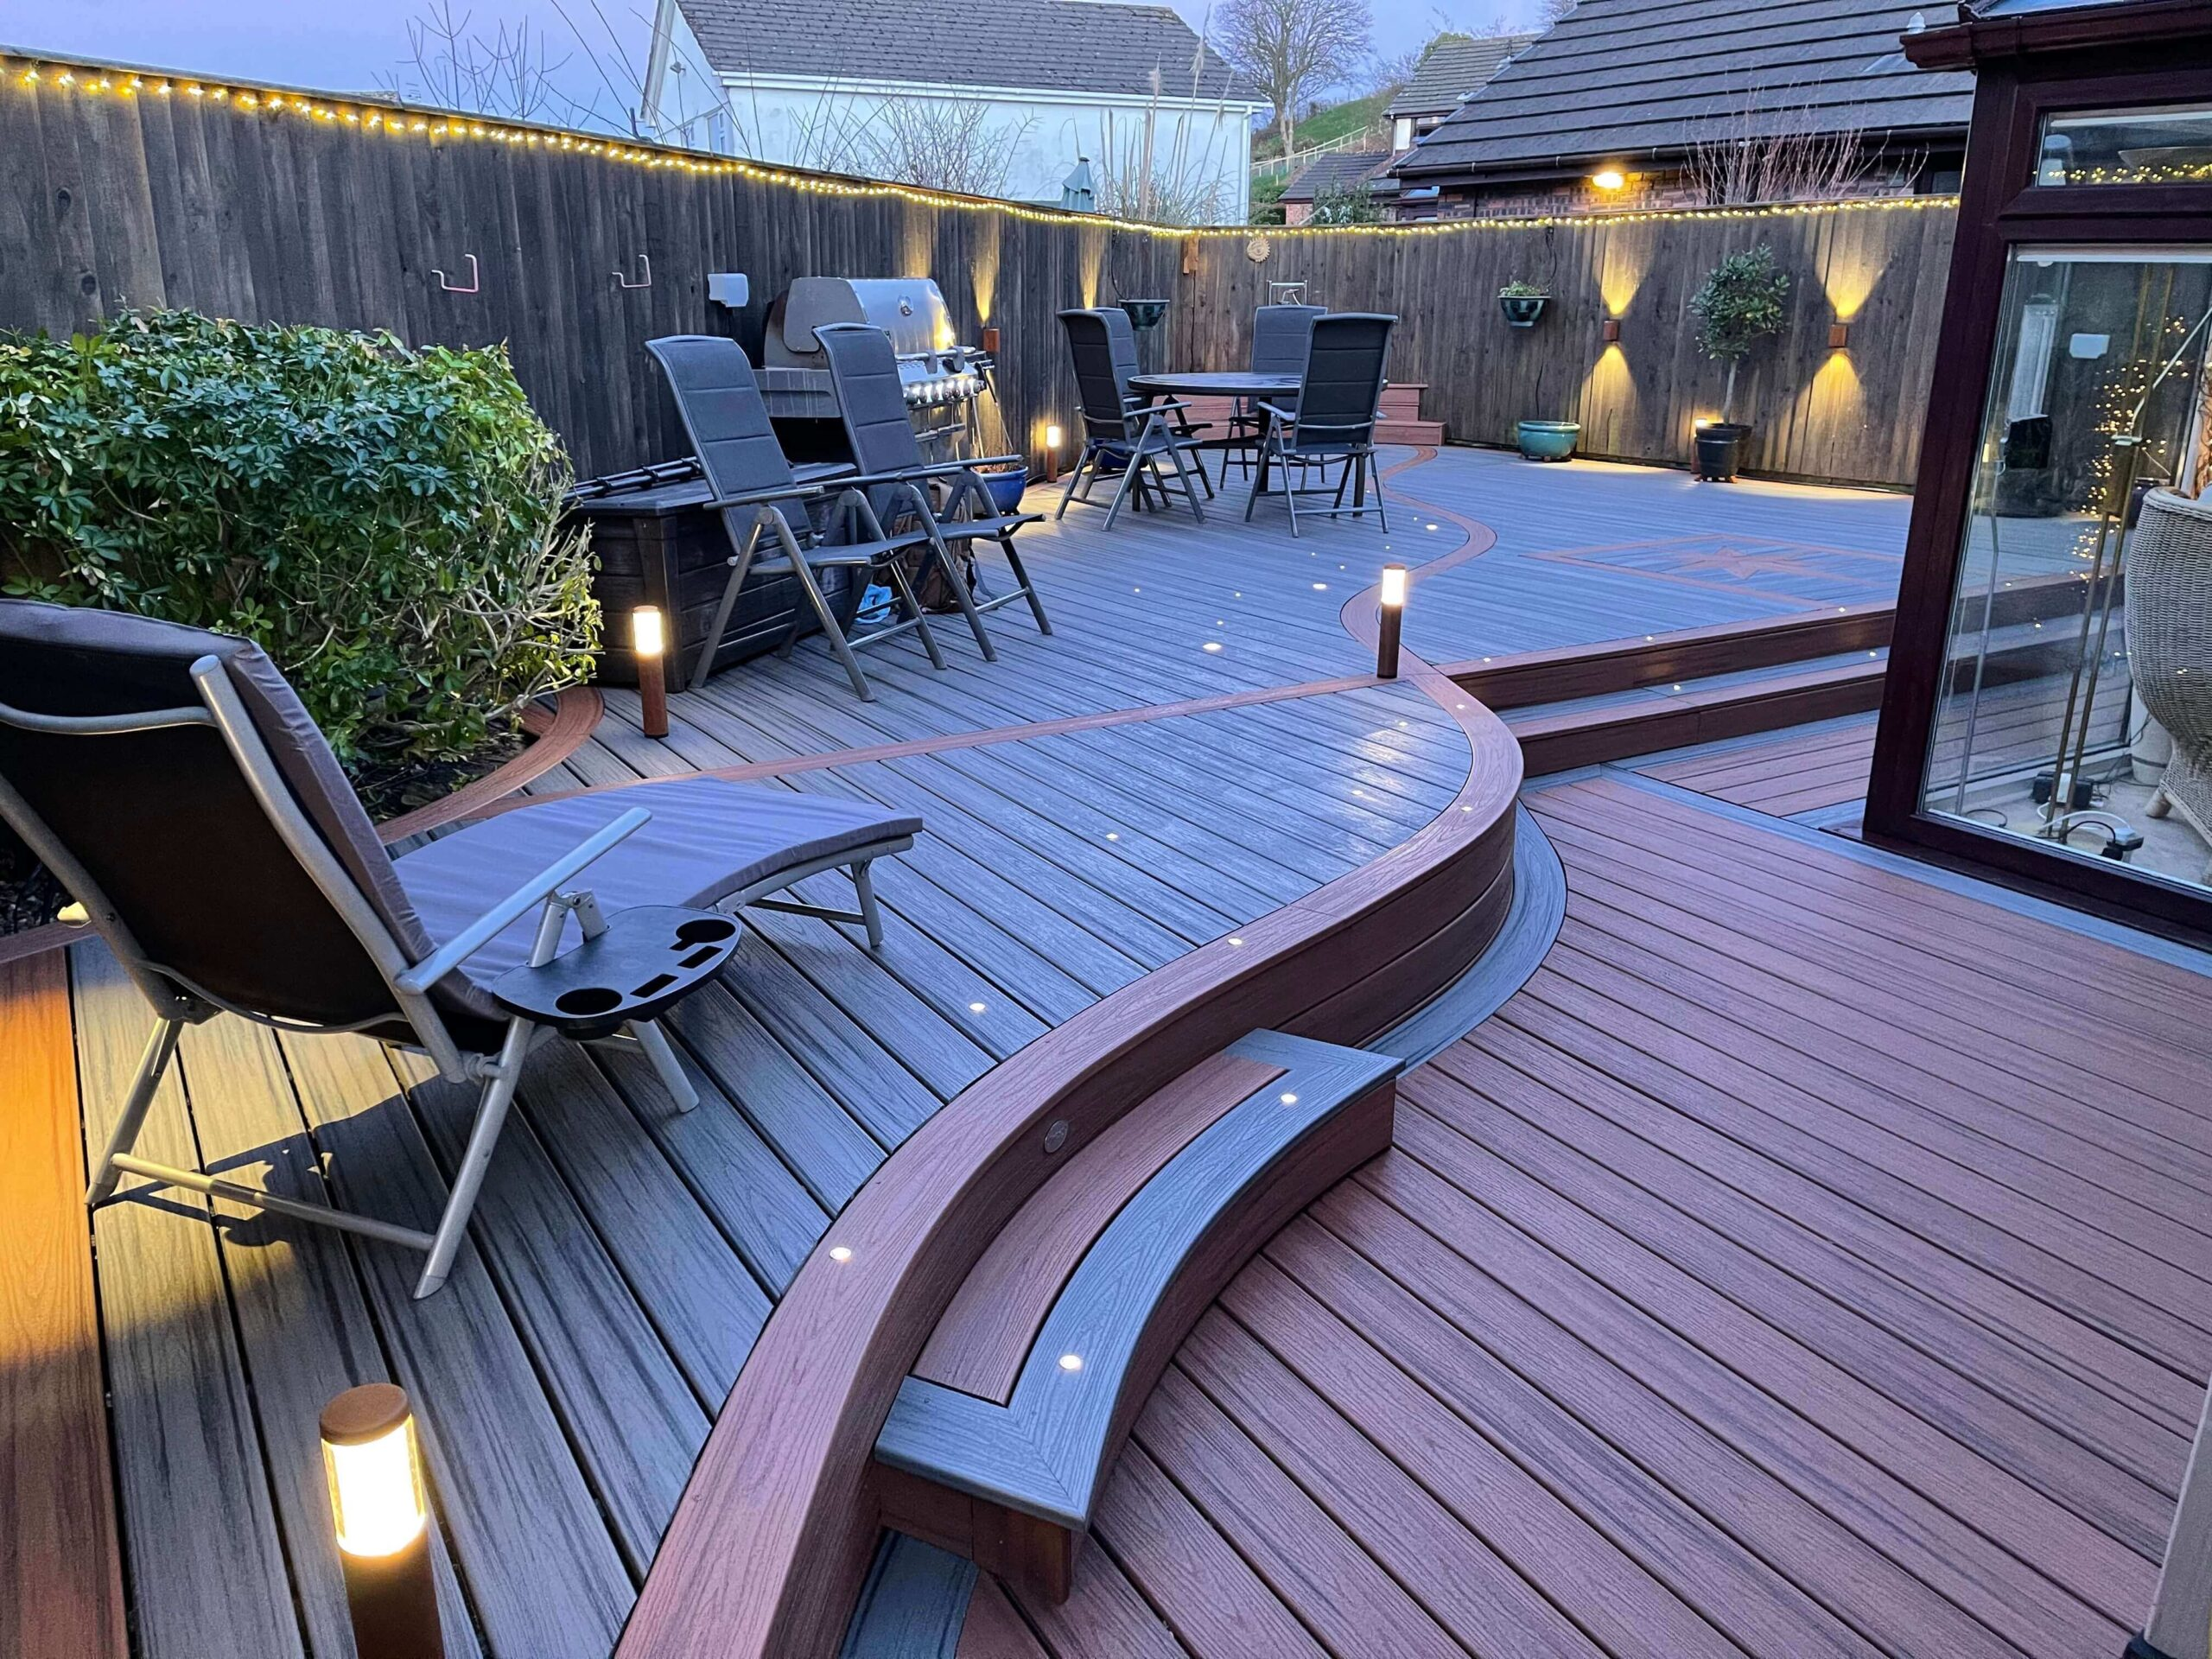 A Firm Foundation: Protect Your Deck Before It's Too Late